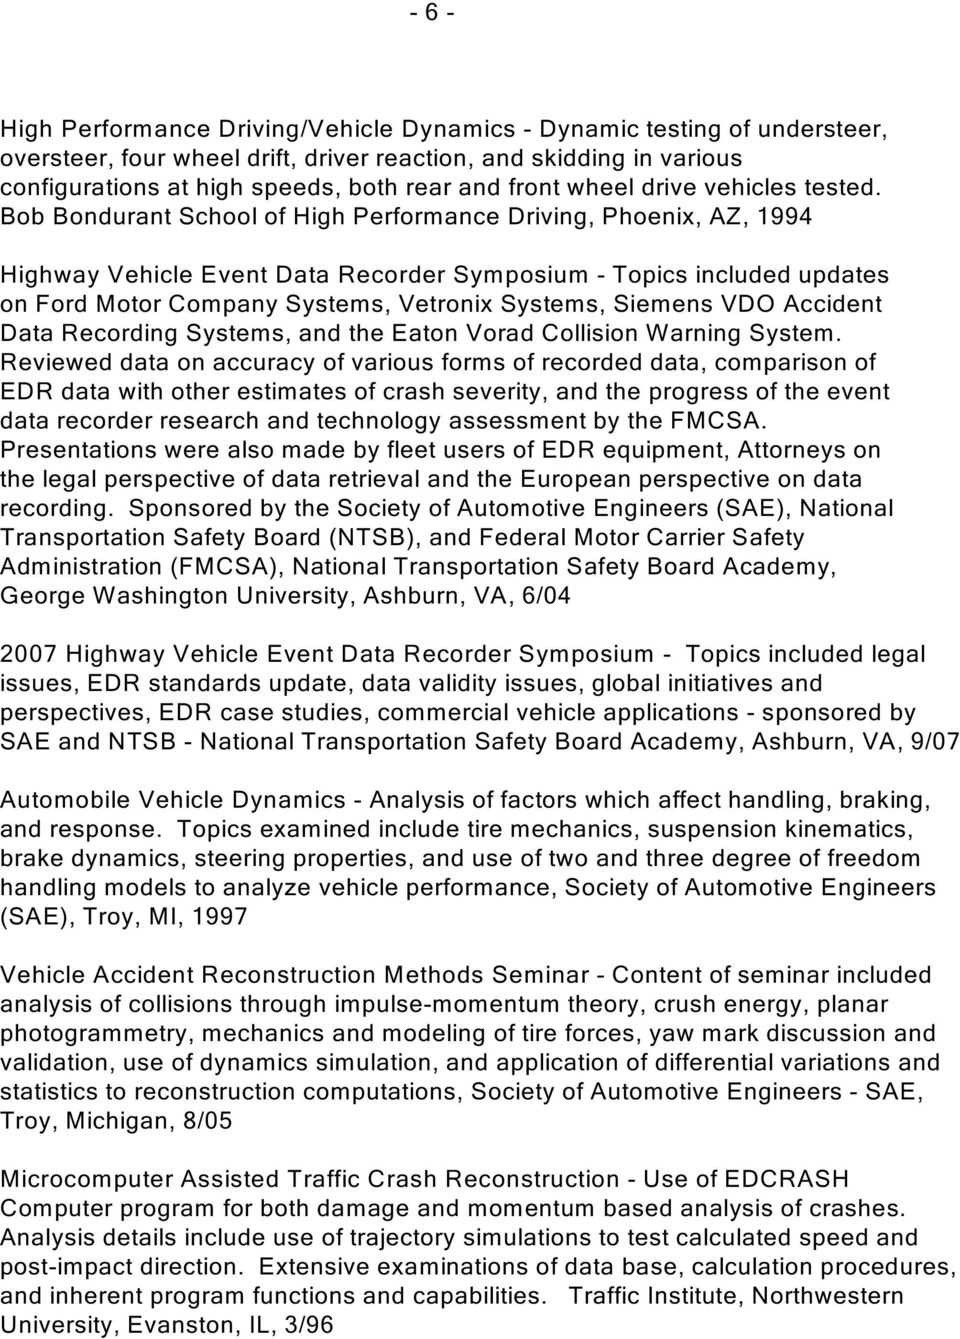 Bob Bondurant School of High Performance Driving, Phoenix, AZ, 1994 Highway Vehicle Event Data Recorder Symposium - Topics included updates on Ford Motor Company Systems, Vetronix Systems, Siemens